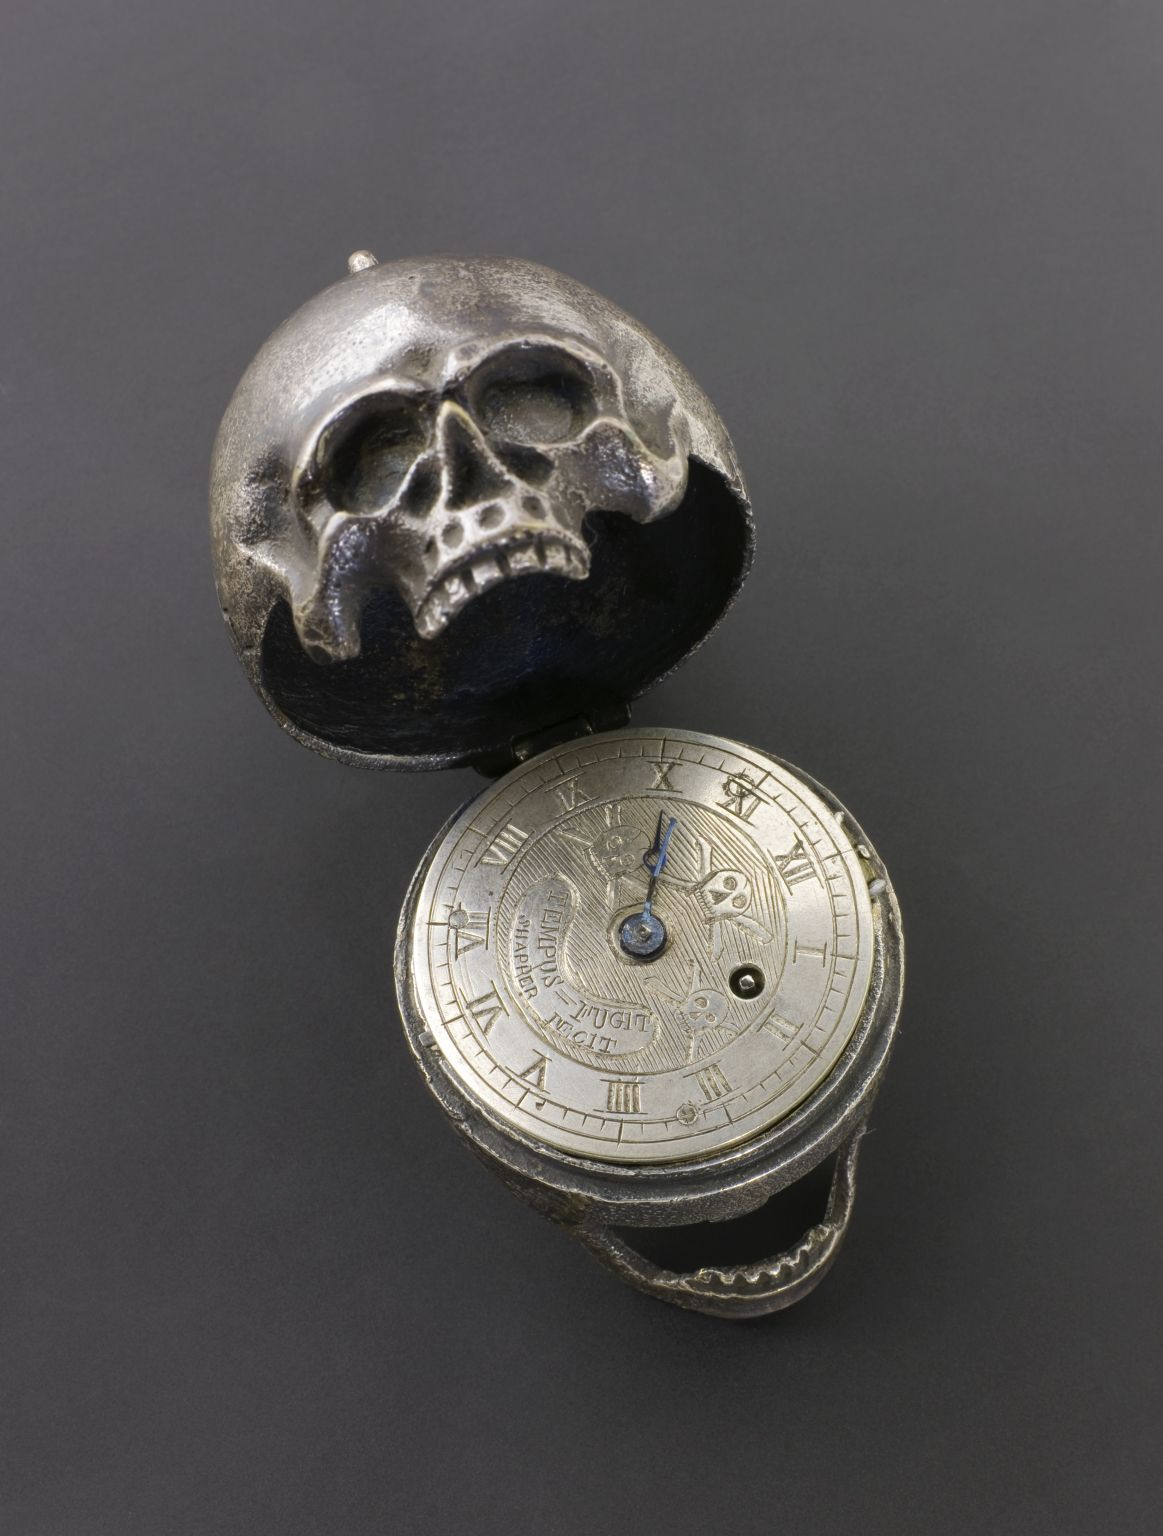 Skull Pocket Watch, Europe; 1701-1900; Silver model of a human skull which  opens up to show a pocket watch inside inscribed with skull and cross bone;  ...